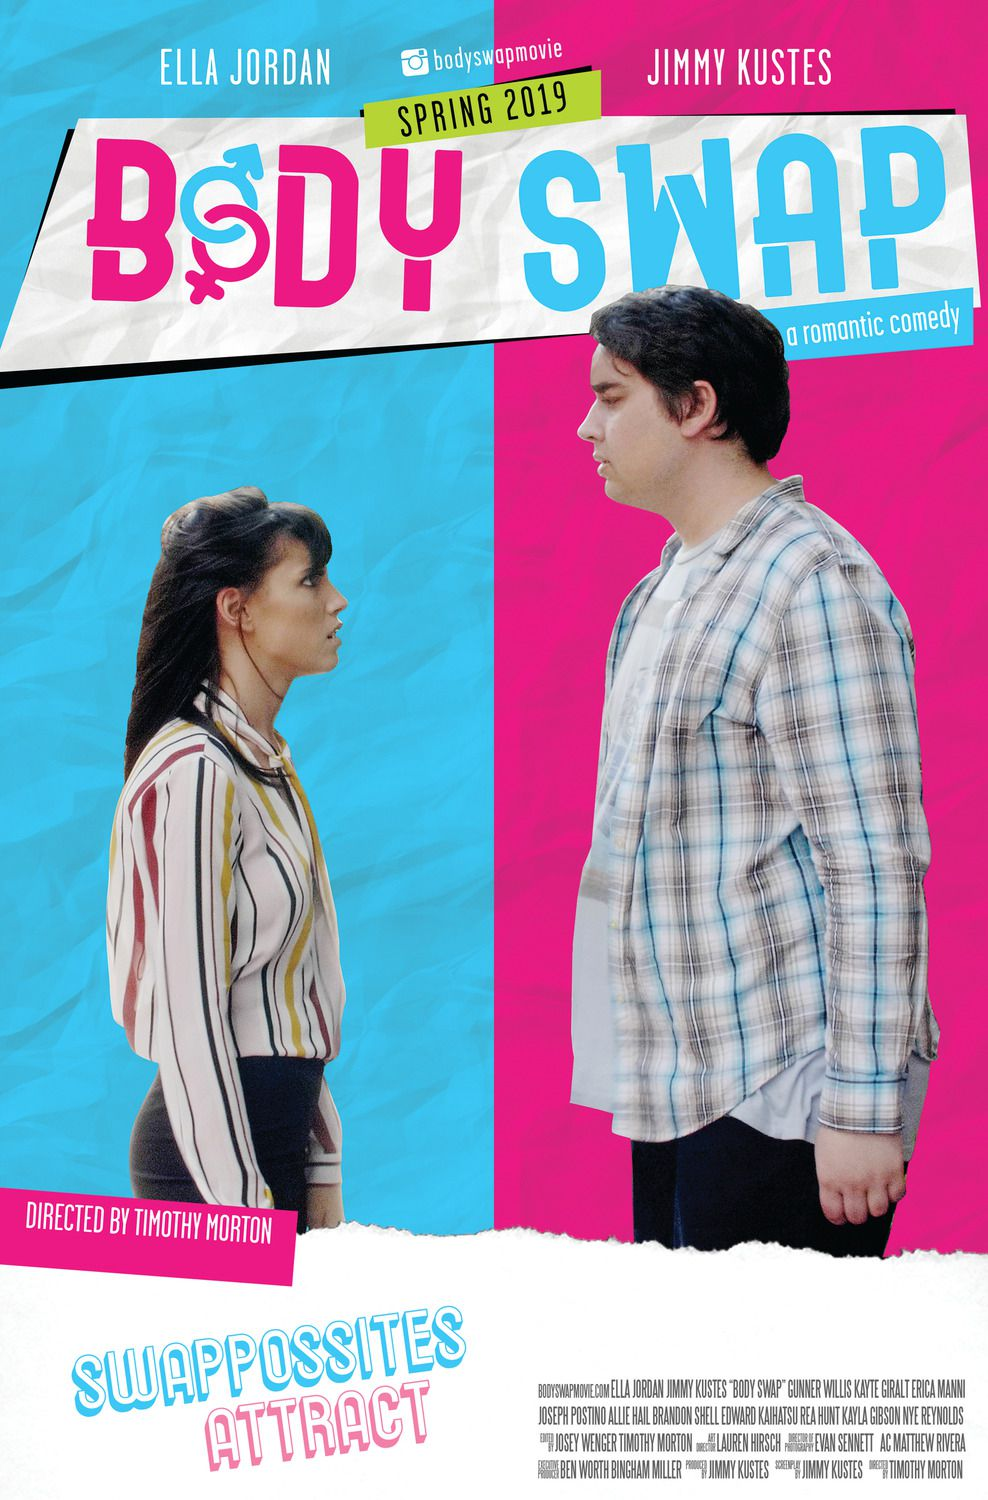 Body Swap (2019) - Swappossites attract a romantic comedy - Ella Jordan, Jimmy Kustes - film poster